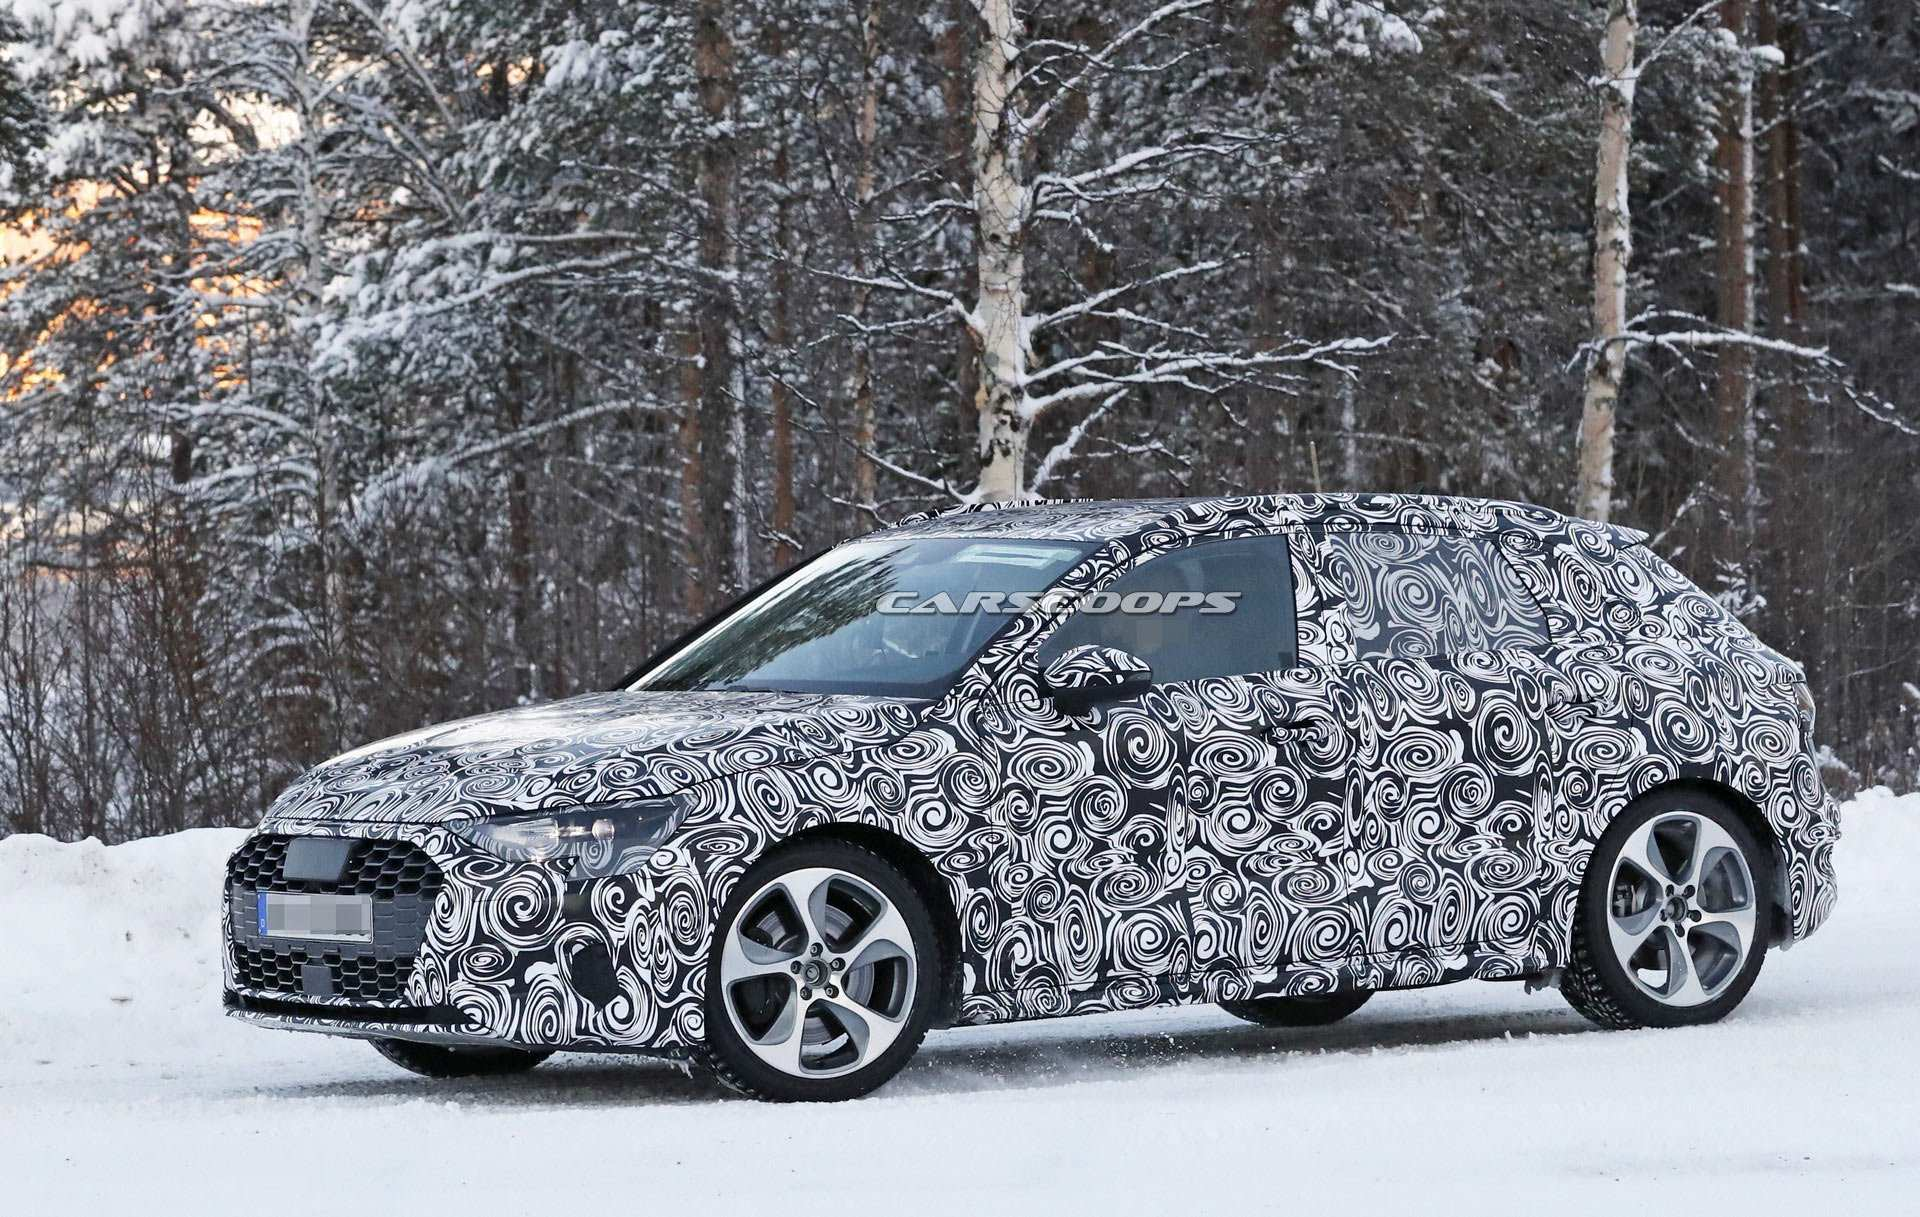 77 Concept of 2020 Audi A3 Engine for 2020 Audi A3